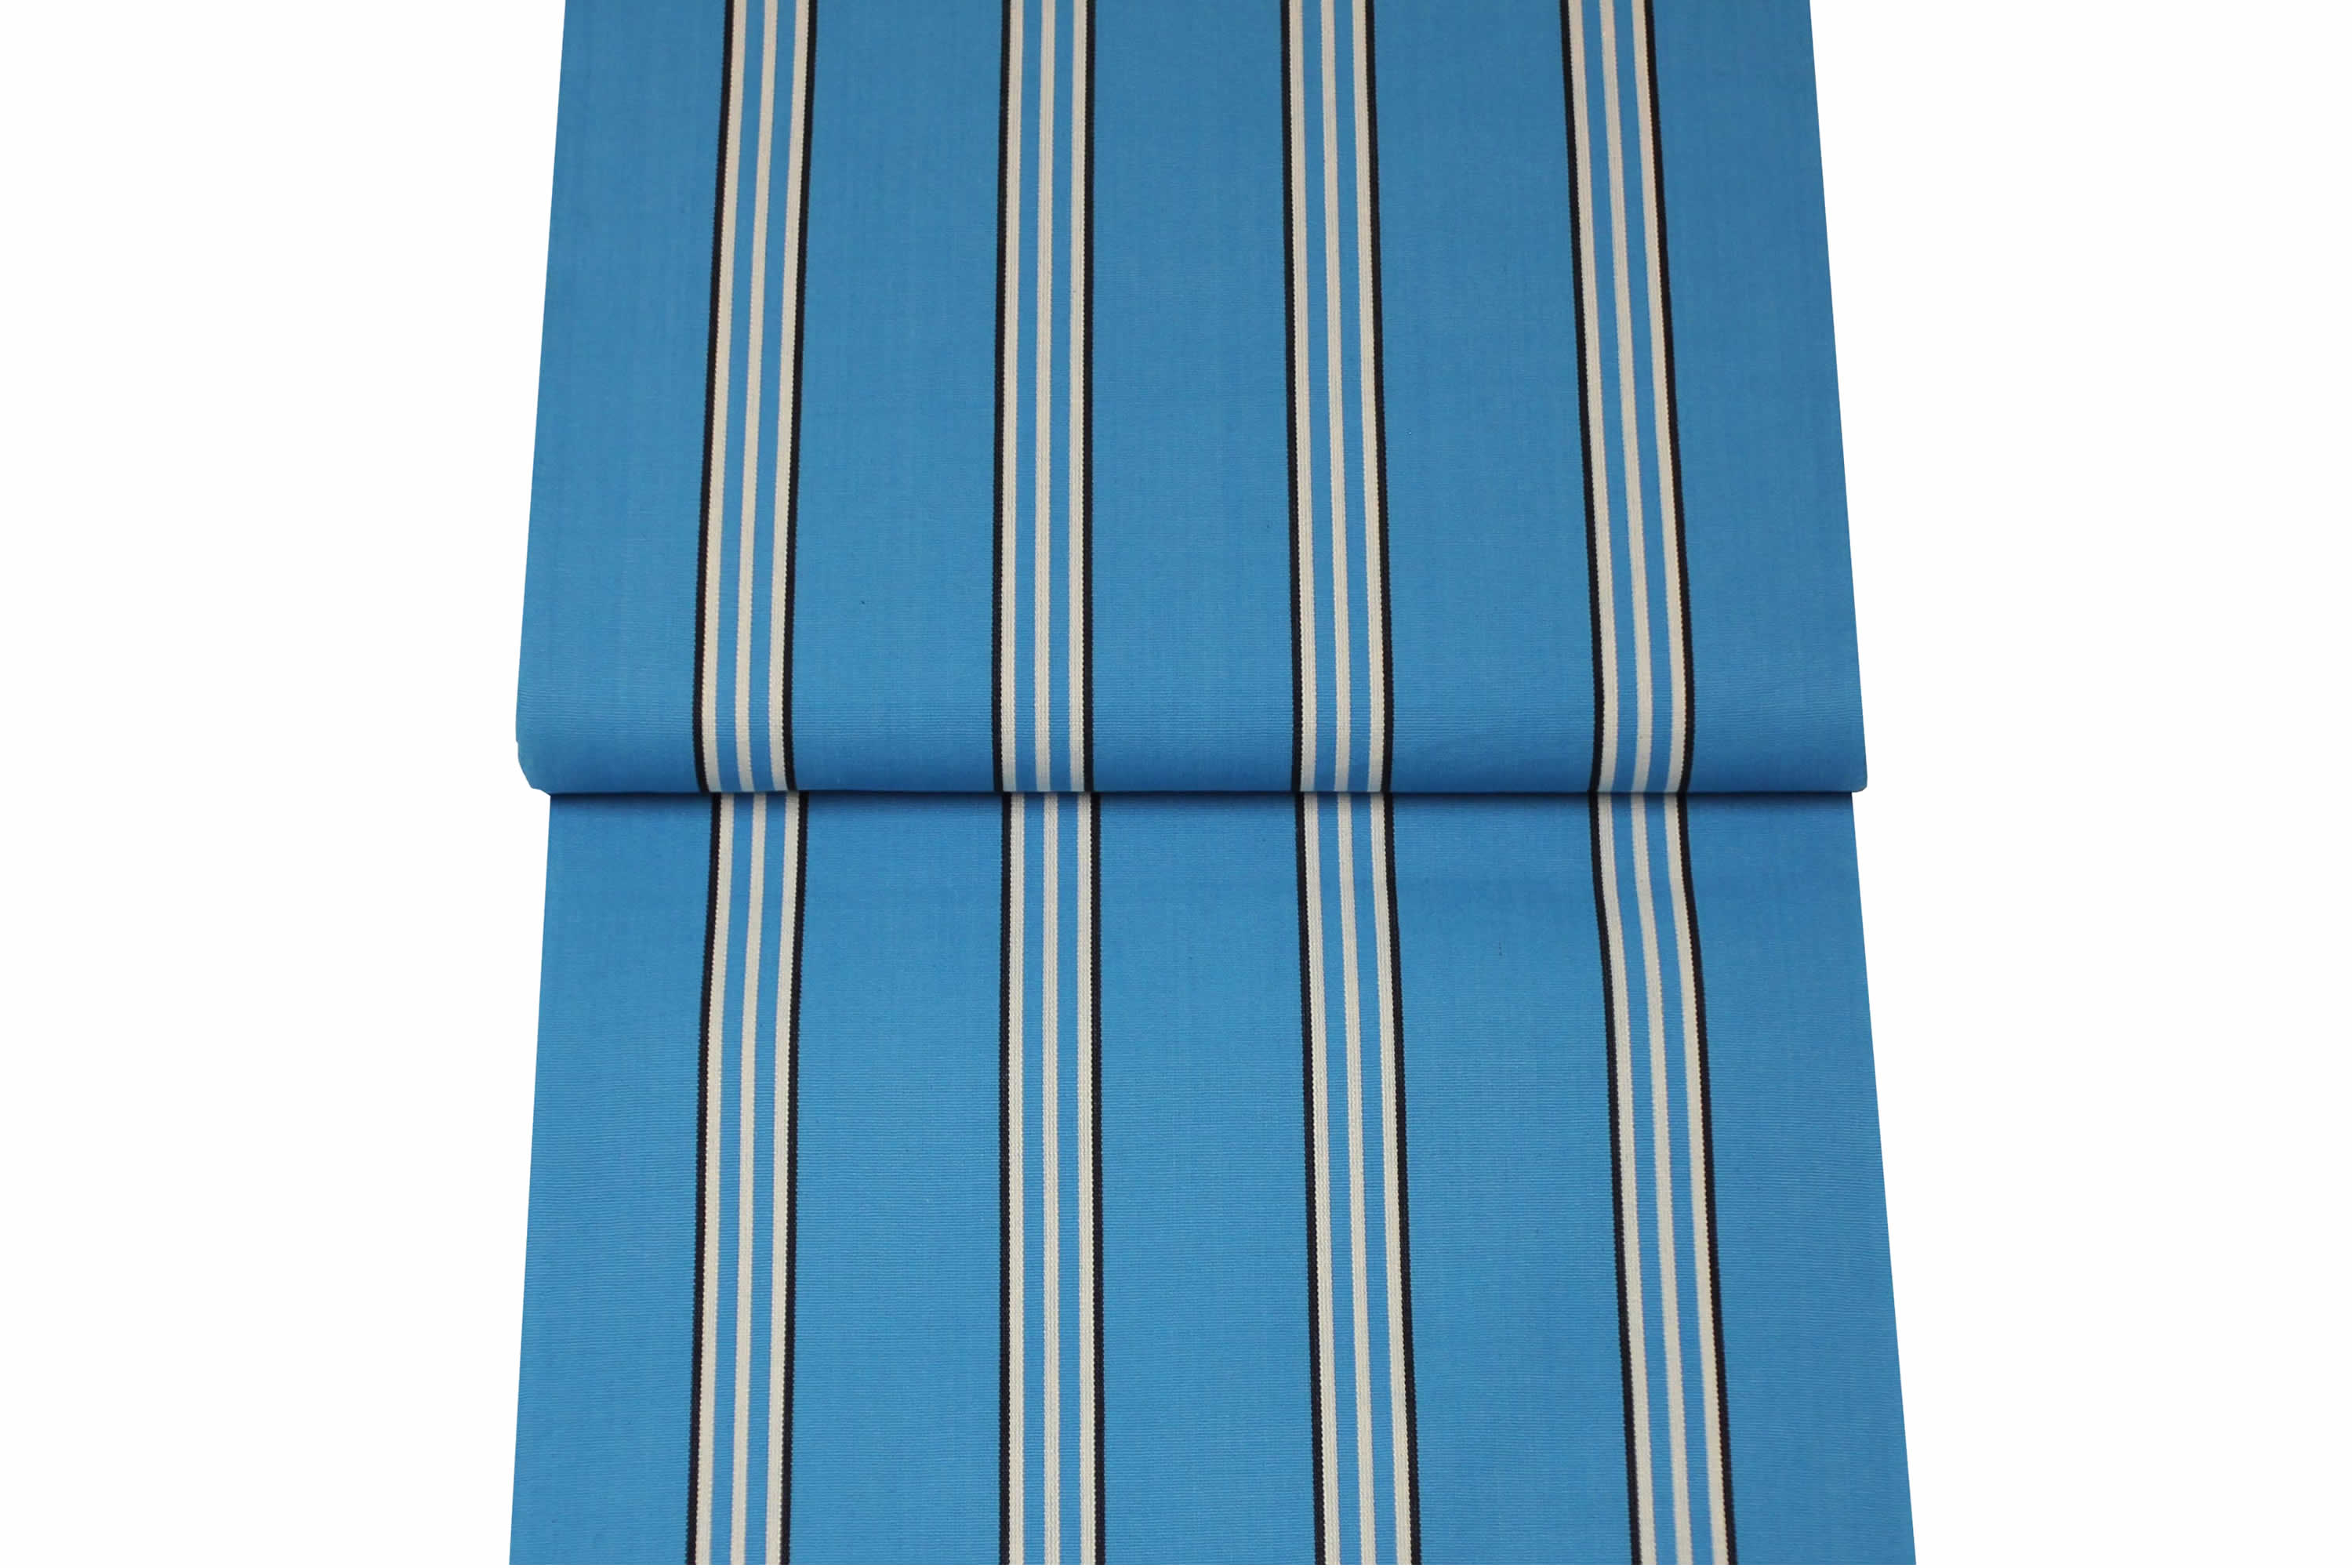 Turquoise Deckchair Canvas Deckchair Fabrics Striped